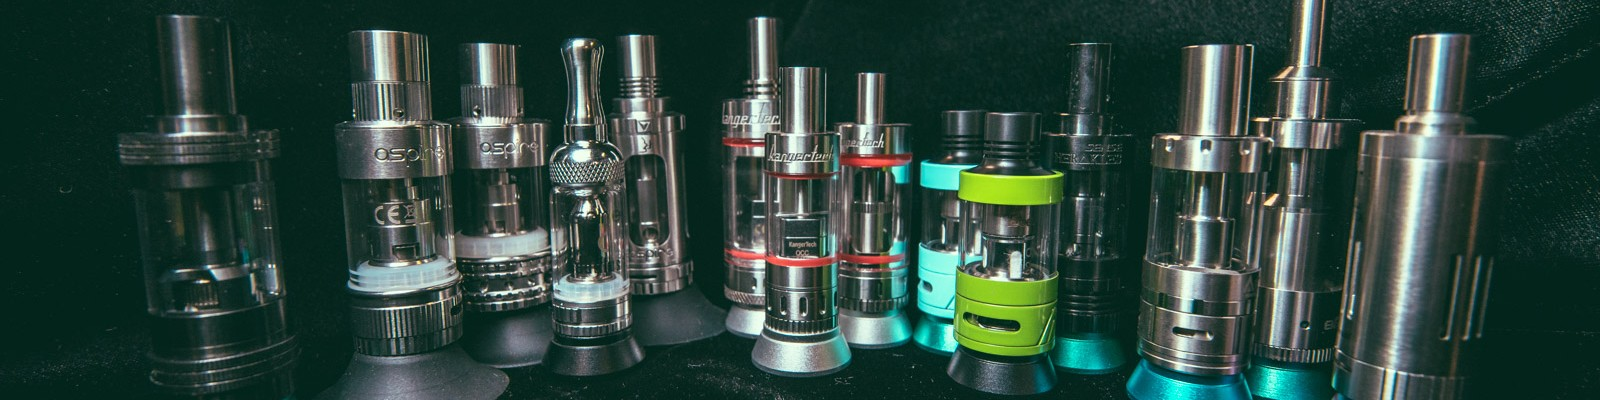 E-Cigarette Tanks